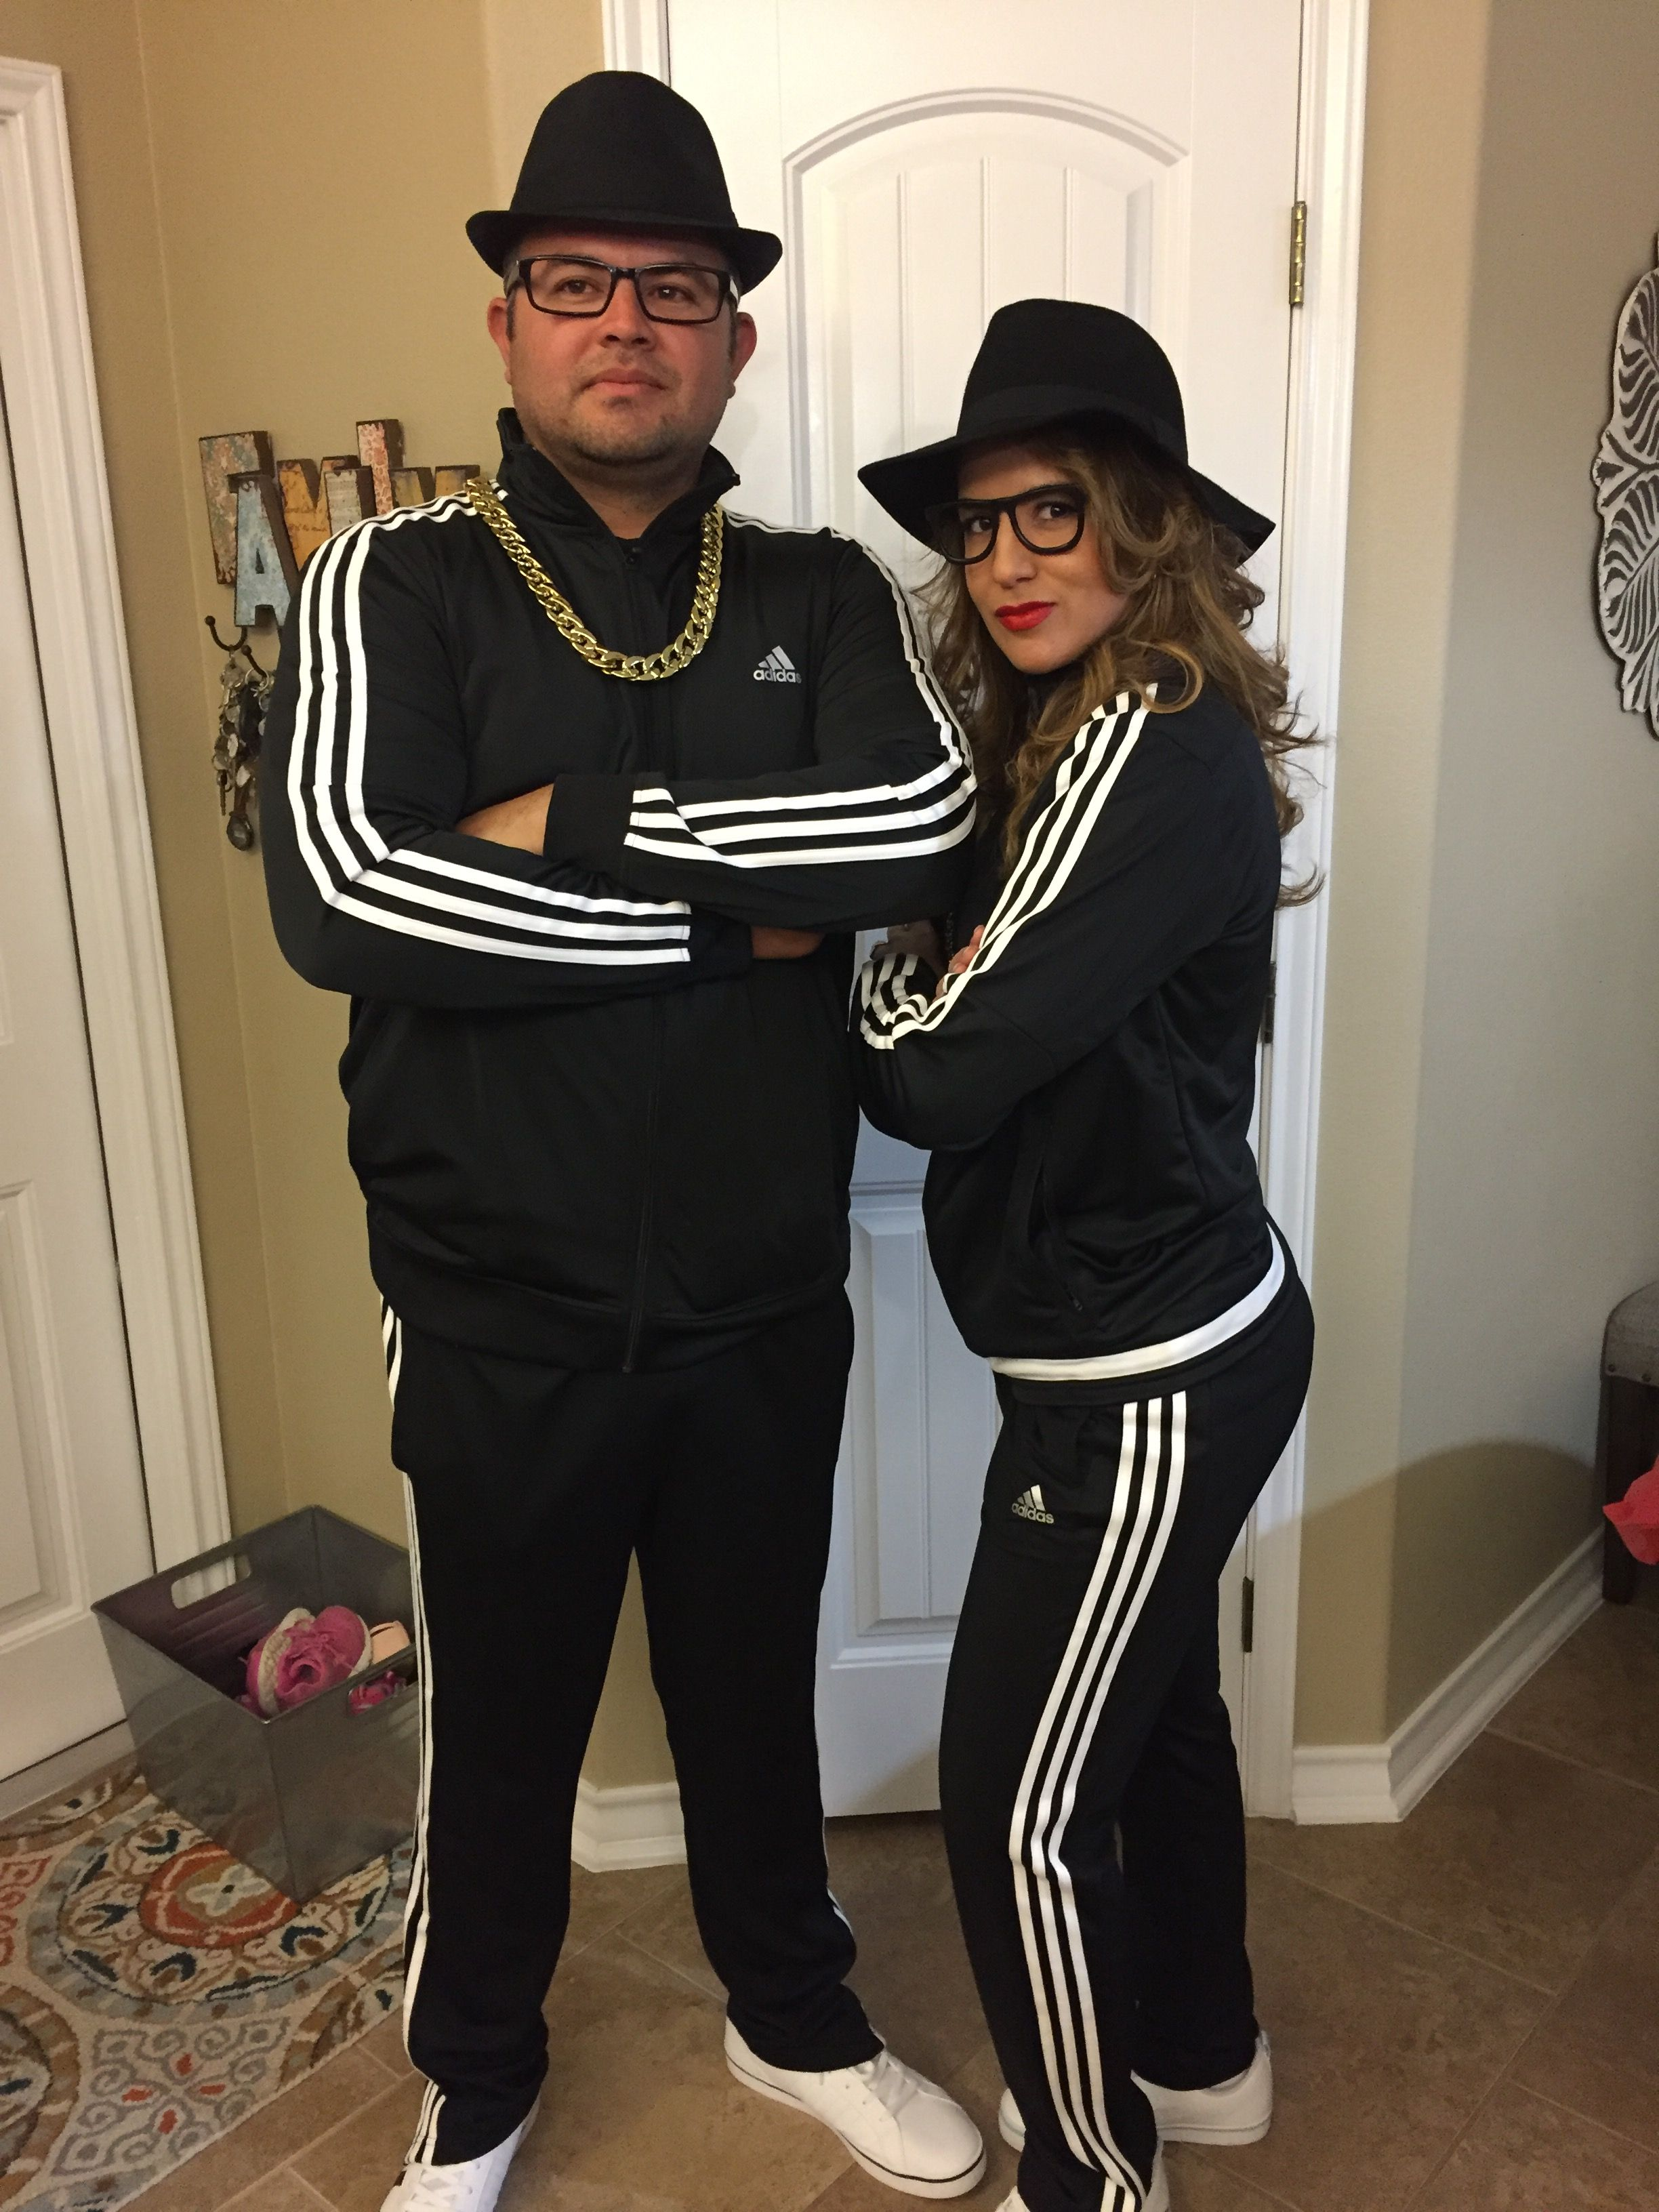 8s theme party. Run DMC  8s party outfits, 8s theme party